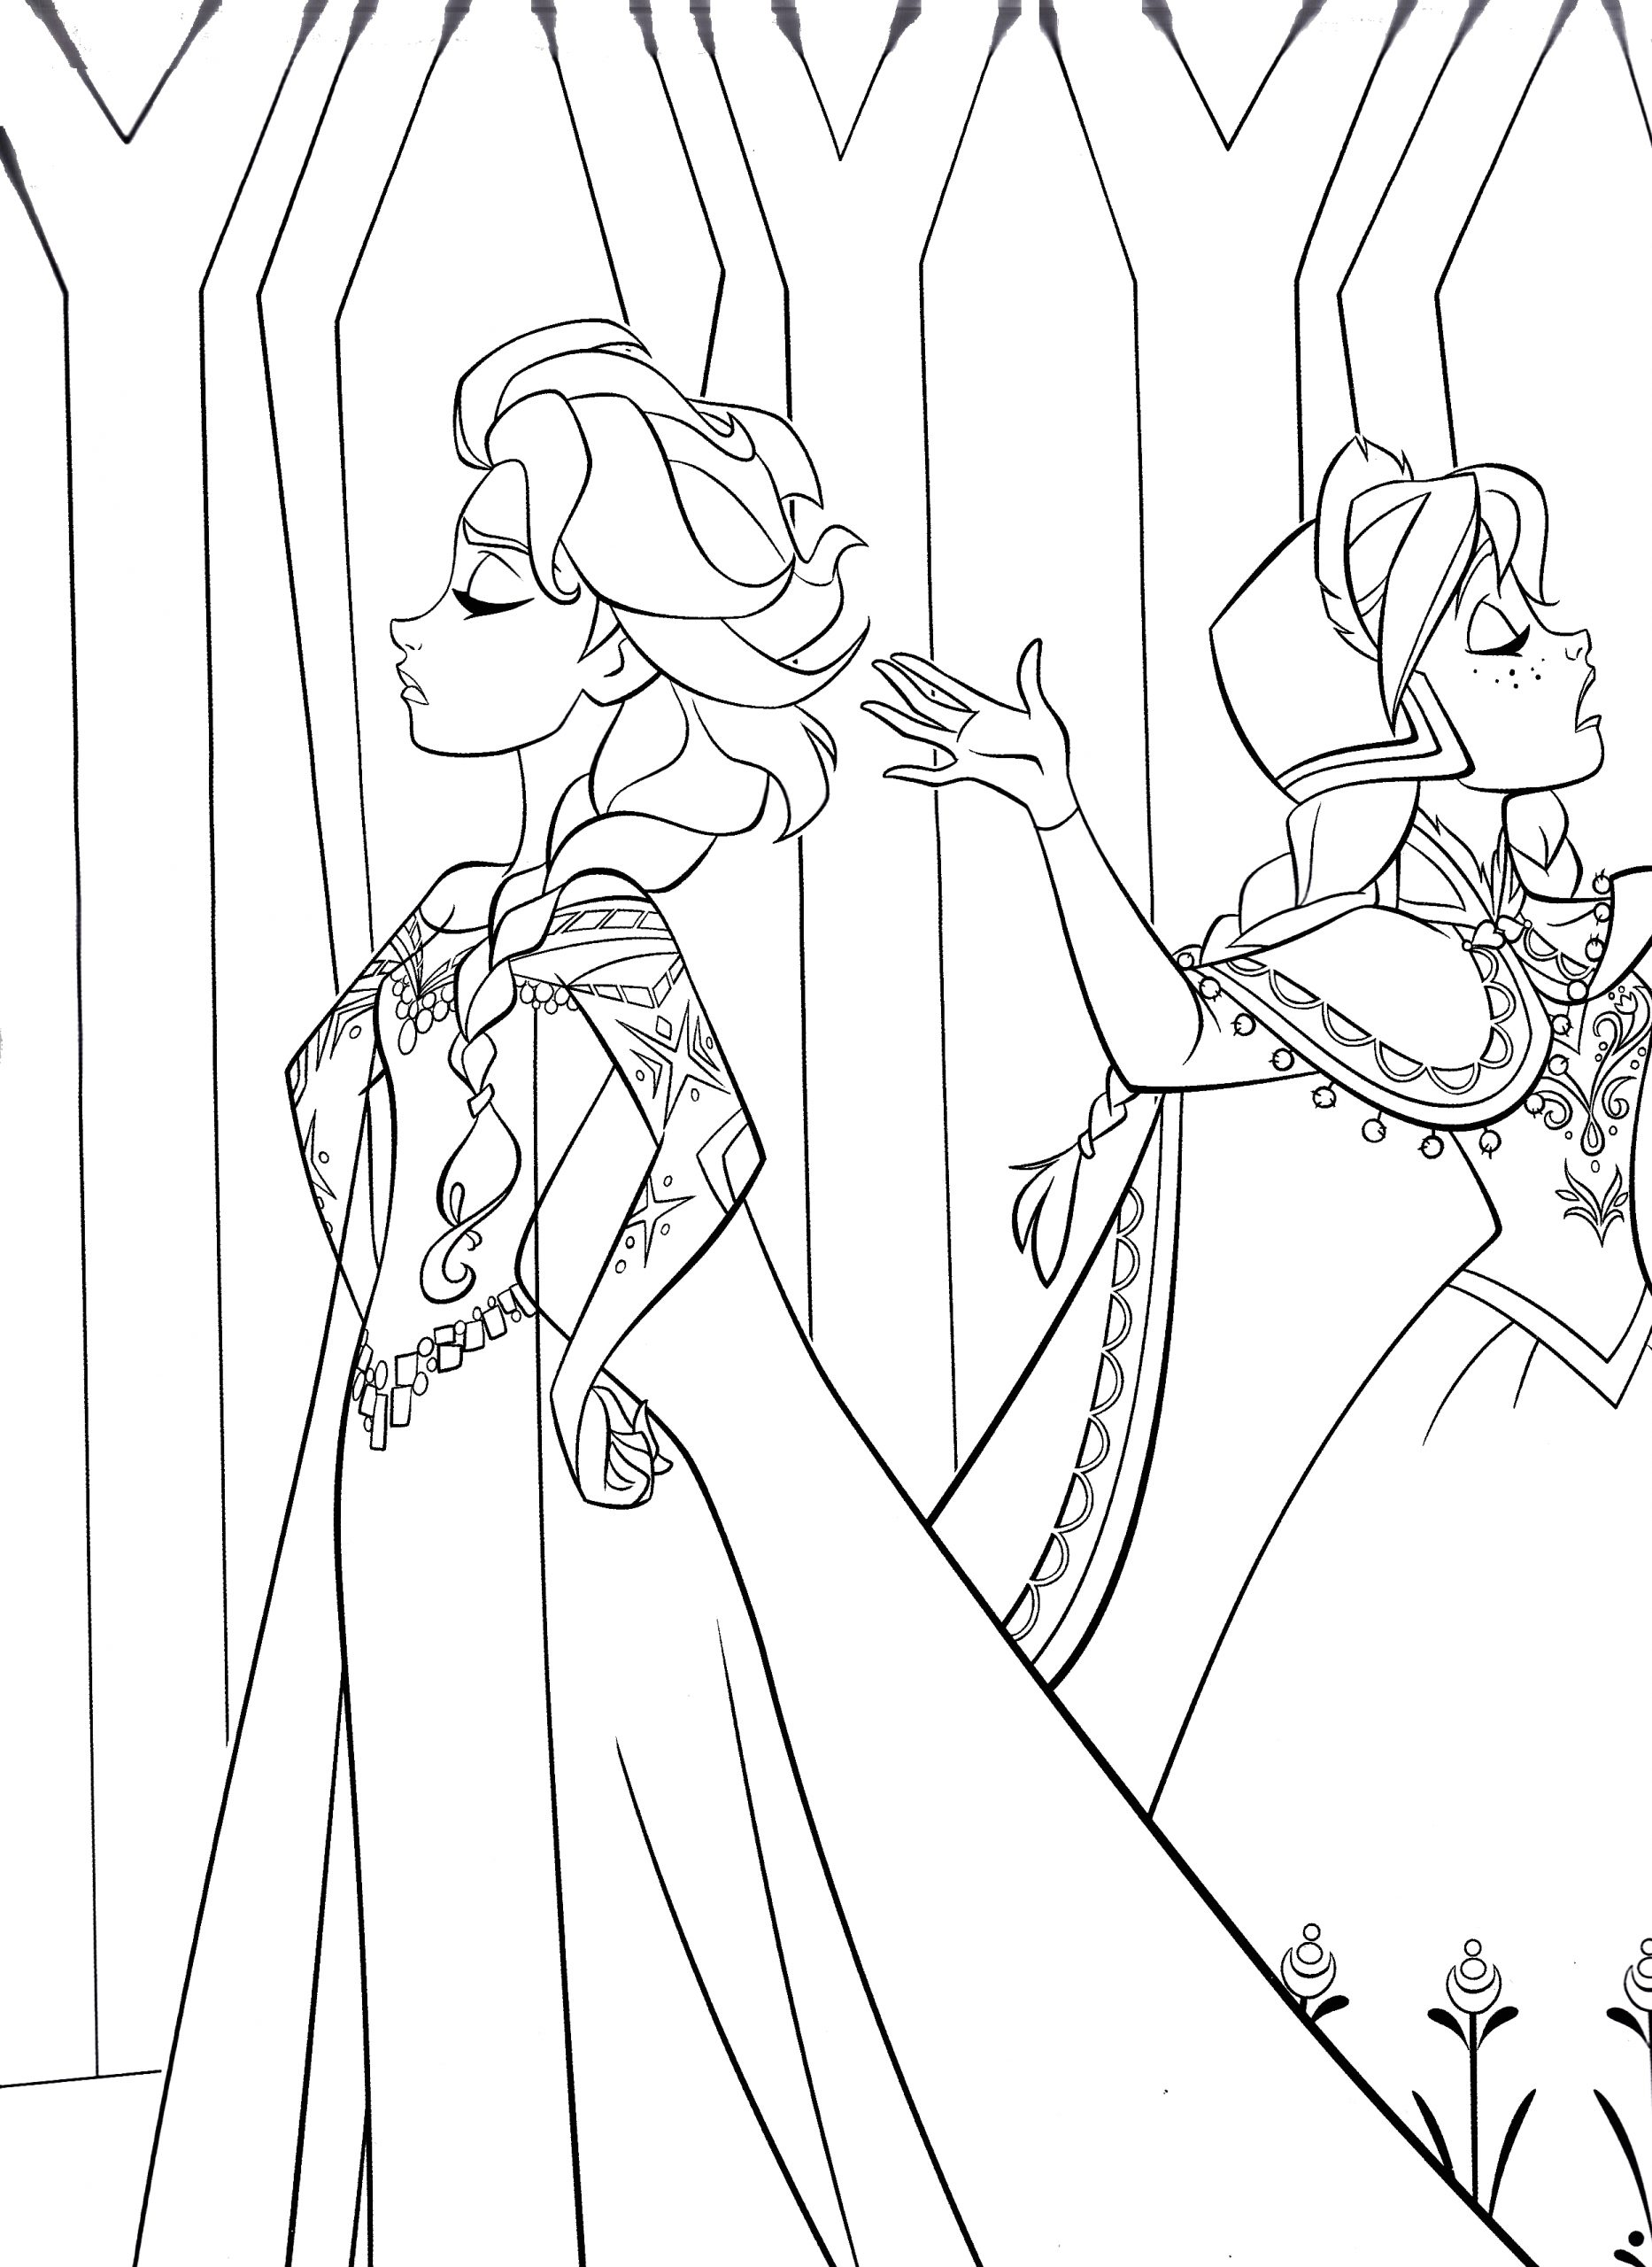 Coloring Pages Of Frozen Characters to Print Free Printable Frozen Coloring Pages for Kids Best